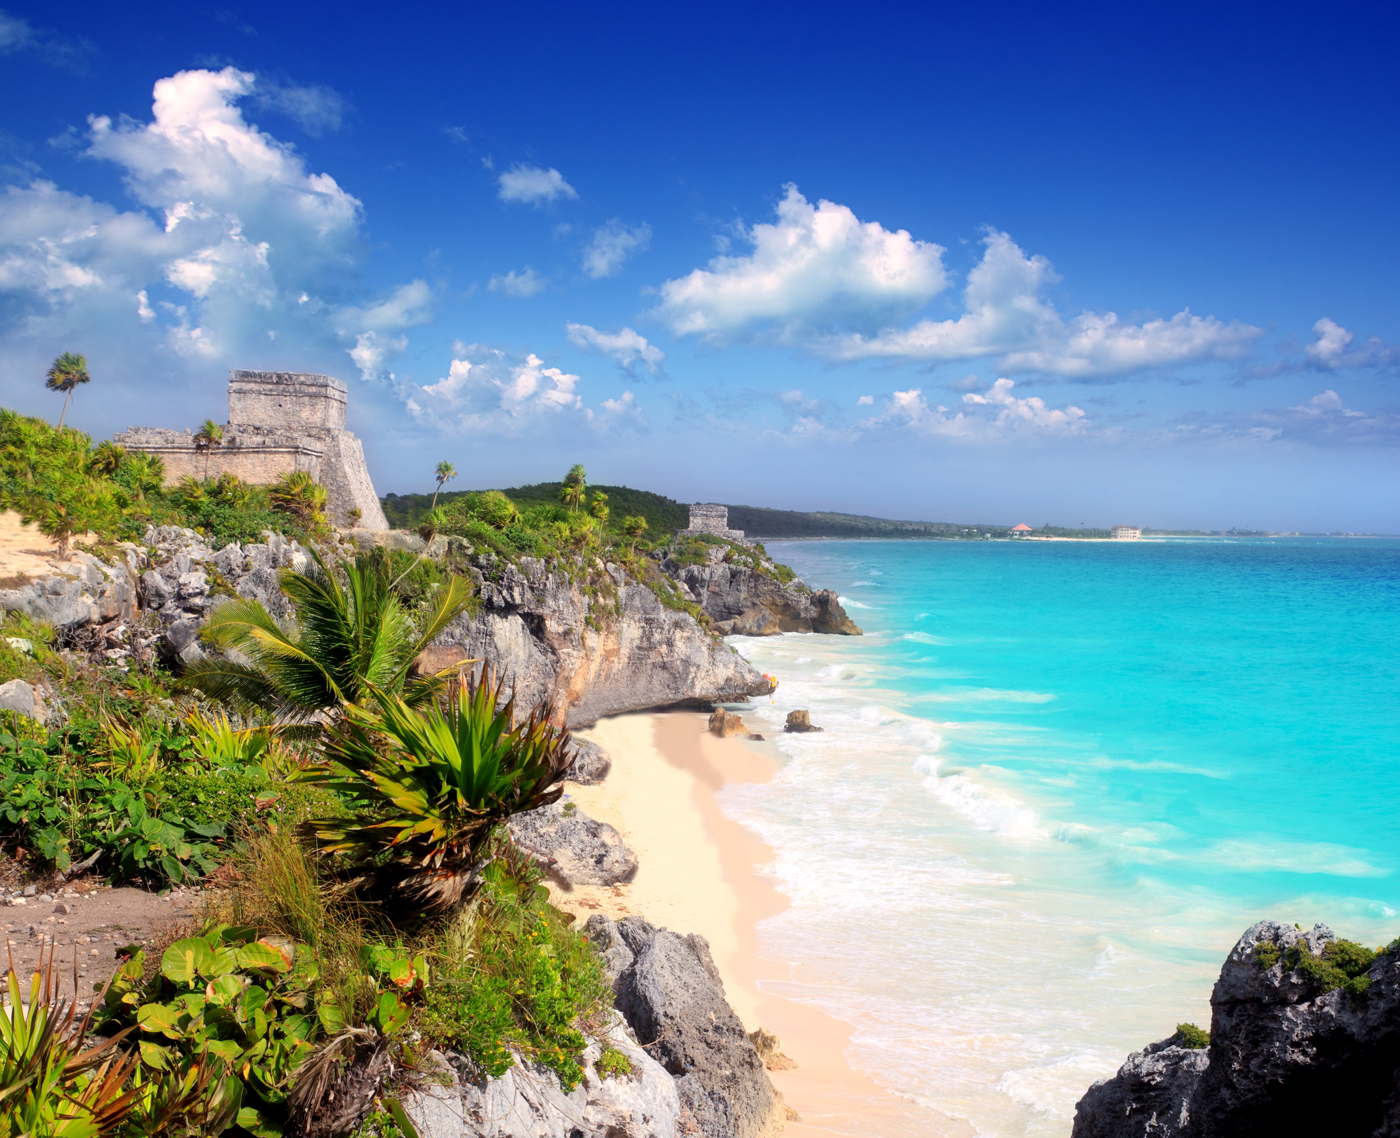 Ancient-Mayan-ruins-by-Tulum-Mexico-Beach